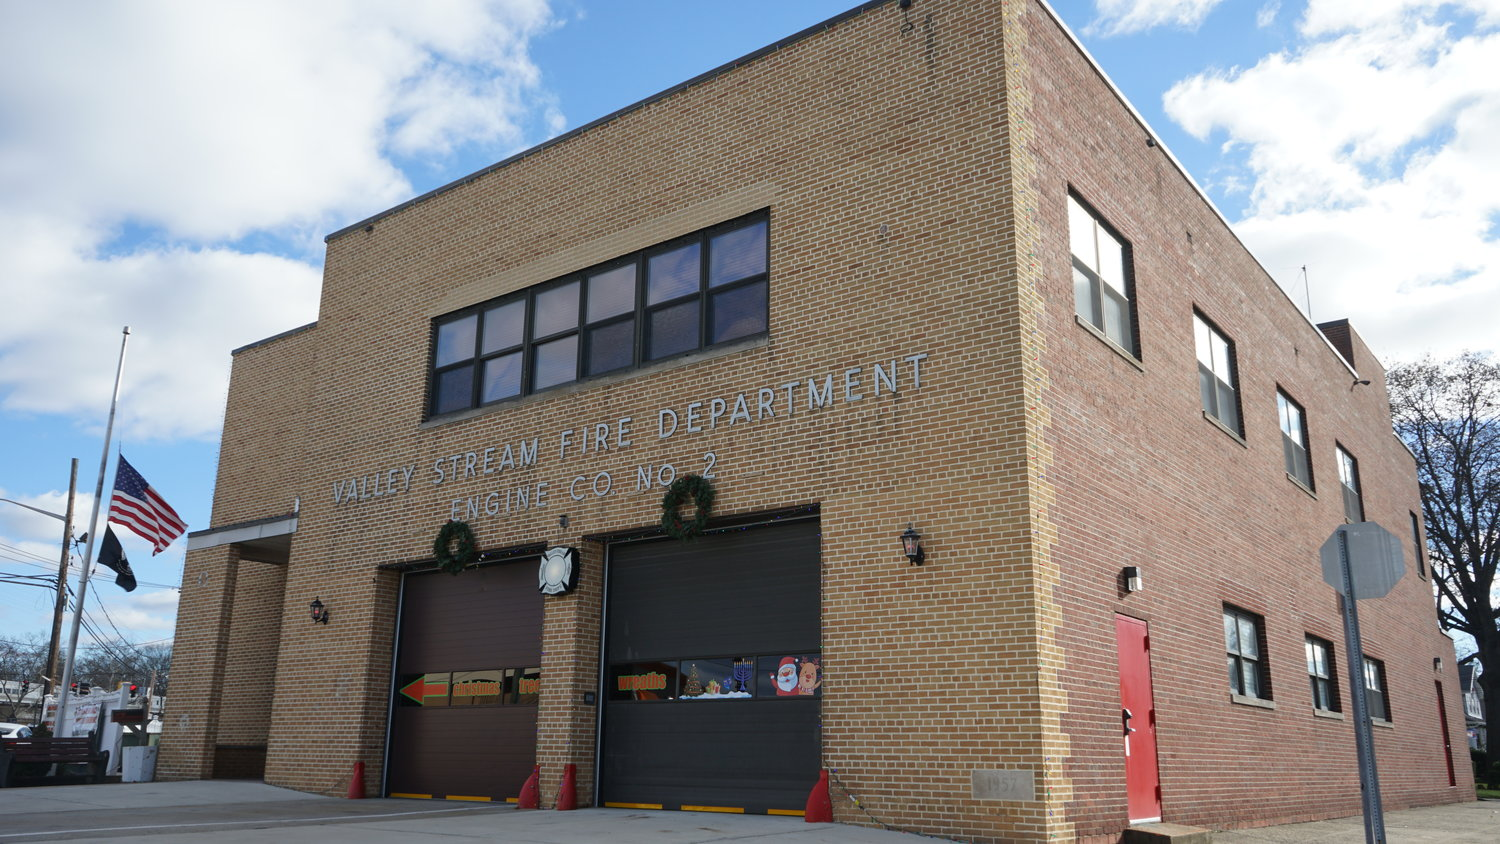 The 250 members of the Valley Stream Fire Department will soon get cancer coverage under New York State's Volunteer Firefighter Enhanced Cancer Disability Law.